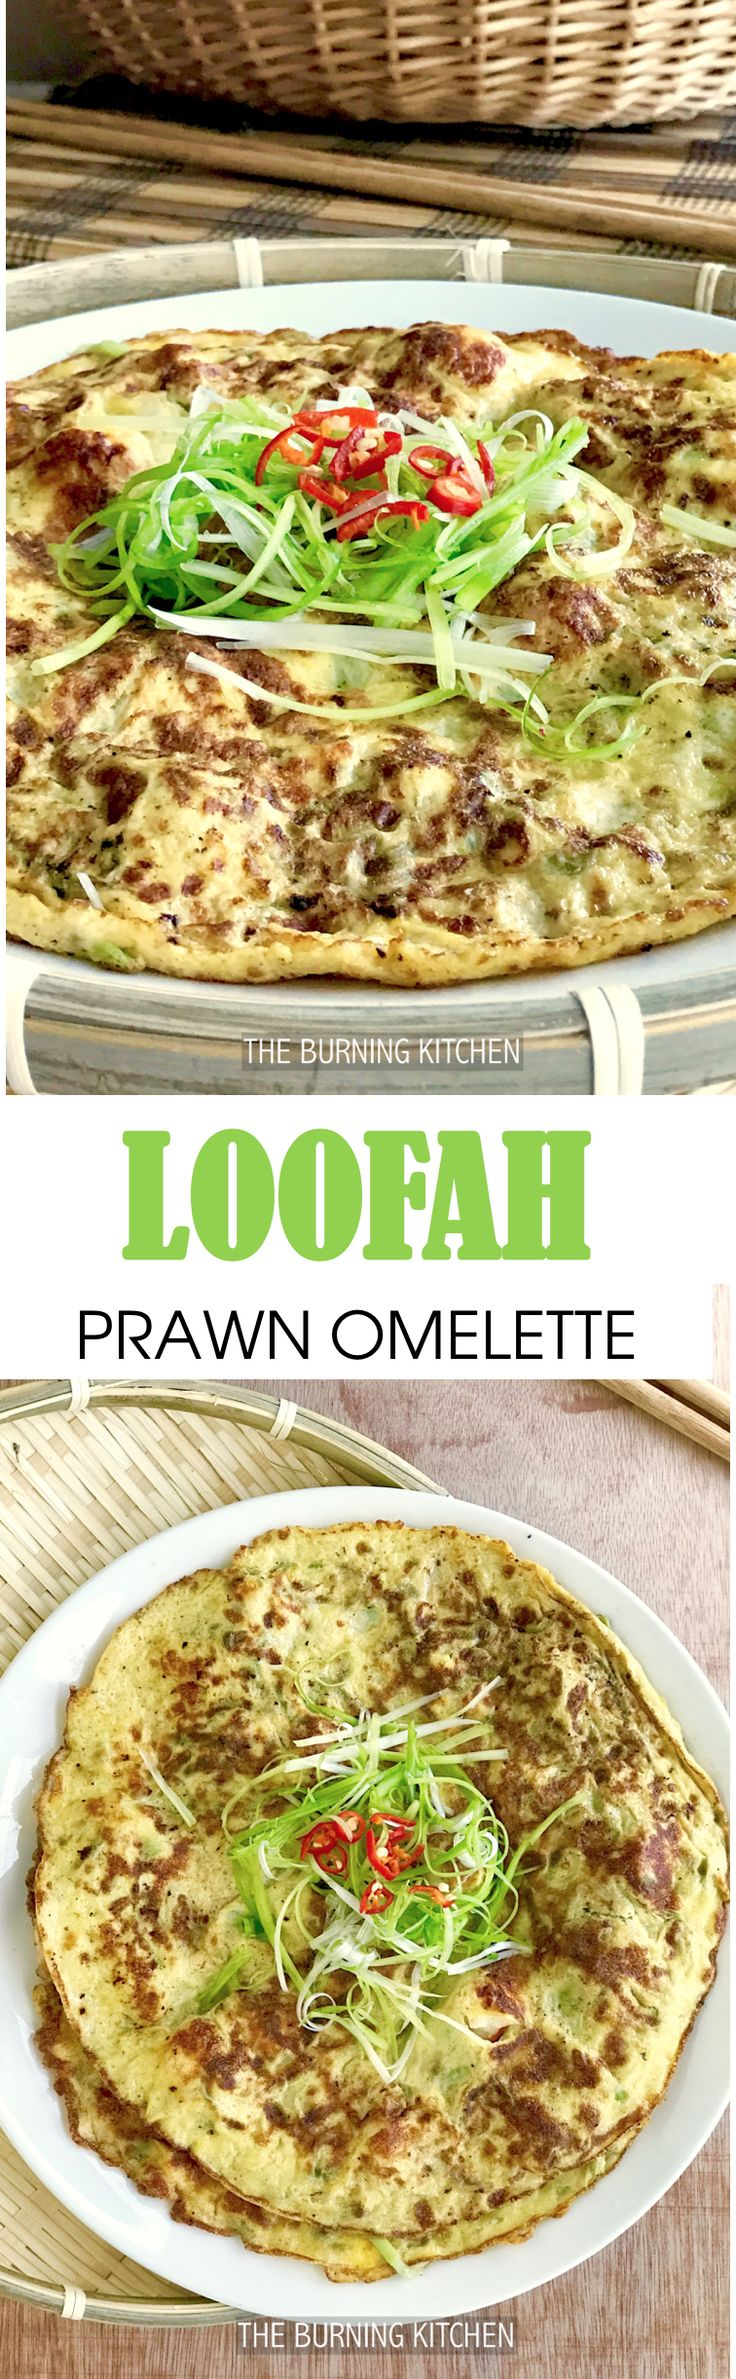 24503 best asian eats images on pinterest asian food recipes loofah prawn omelette asian food recipesegg forumfinder Image collections